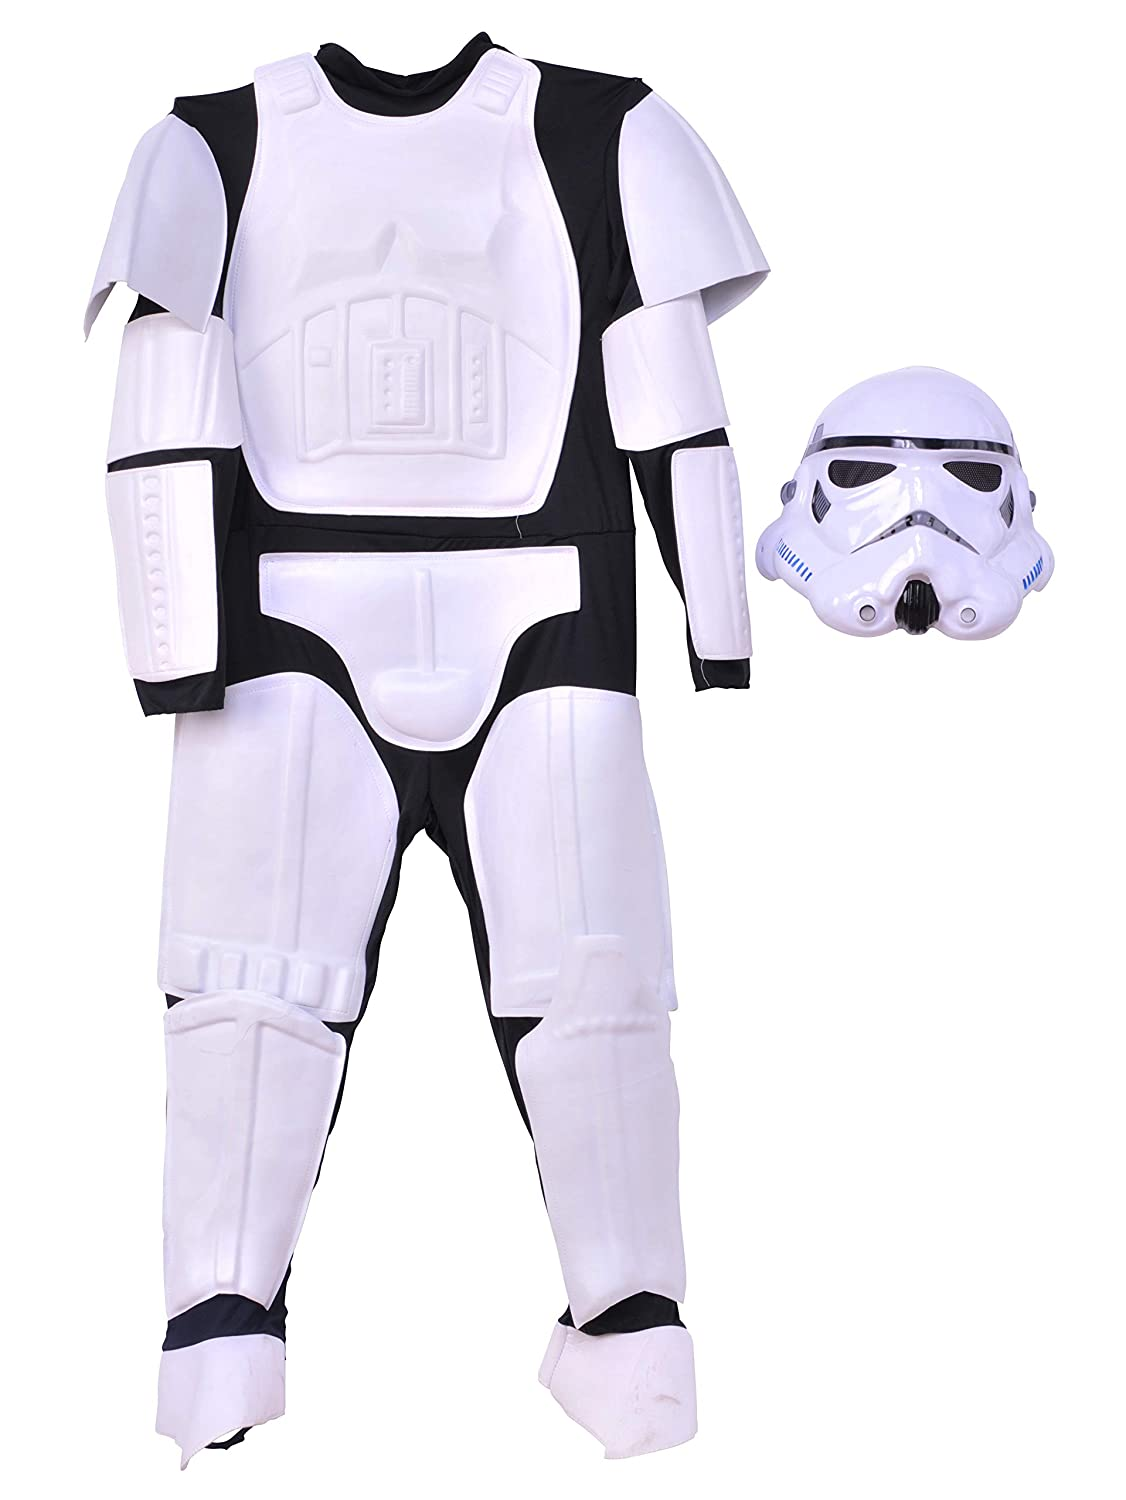 How much does a stormtrooper suit cost